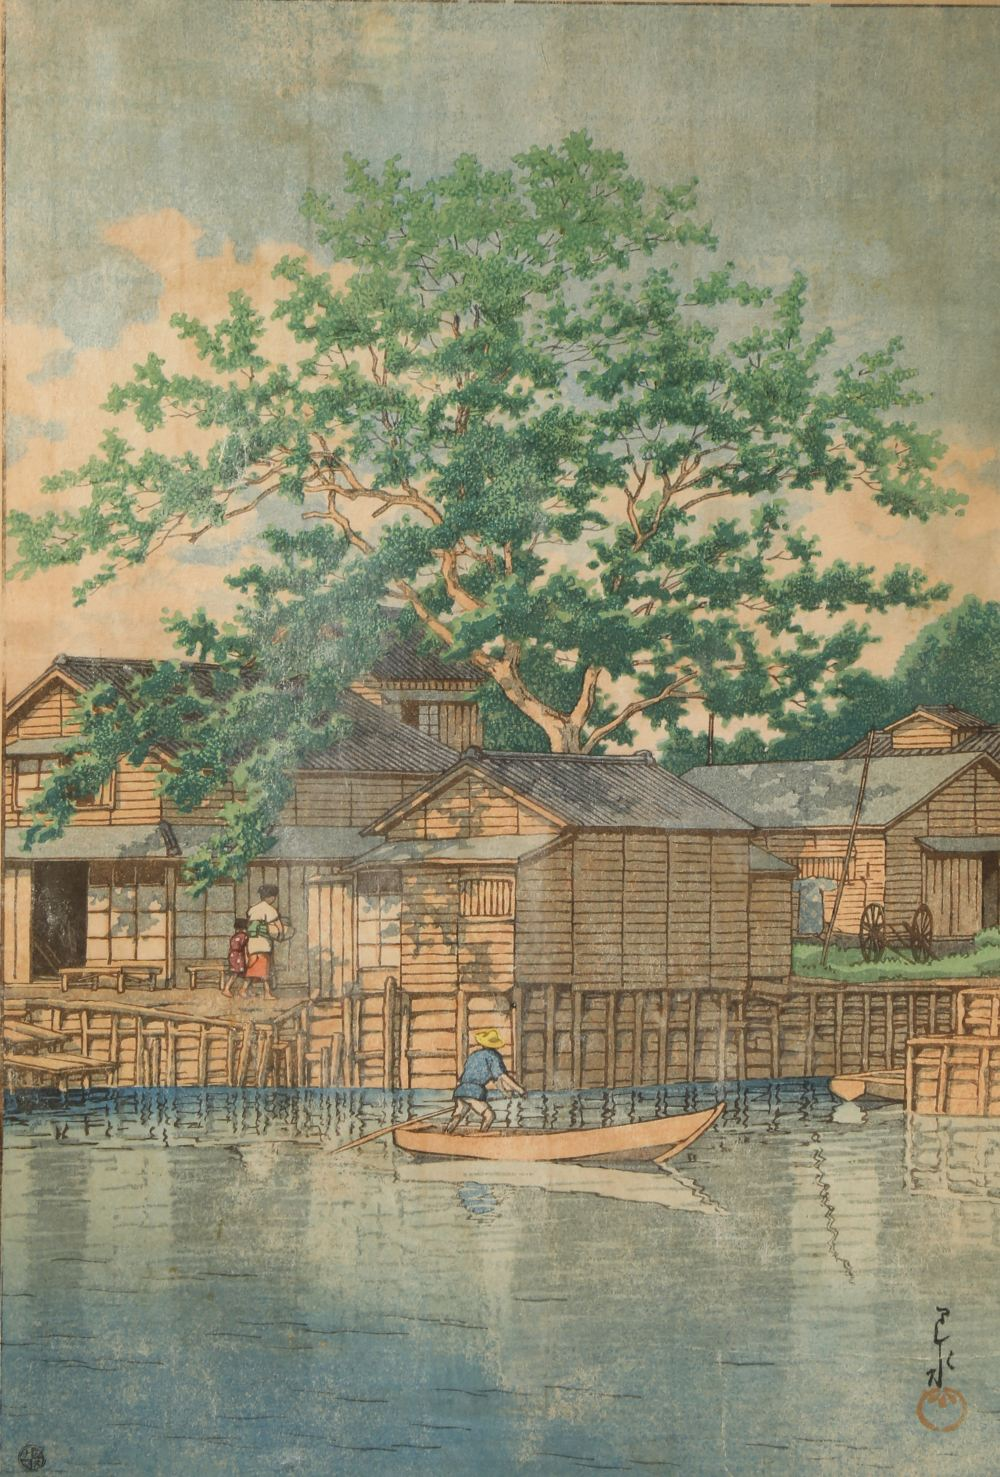 HASUI KAWASE (1883-1957) SHOWA ERA OR LATER, 1926 OR LATER A woodblock print on paper, entitled